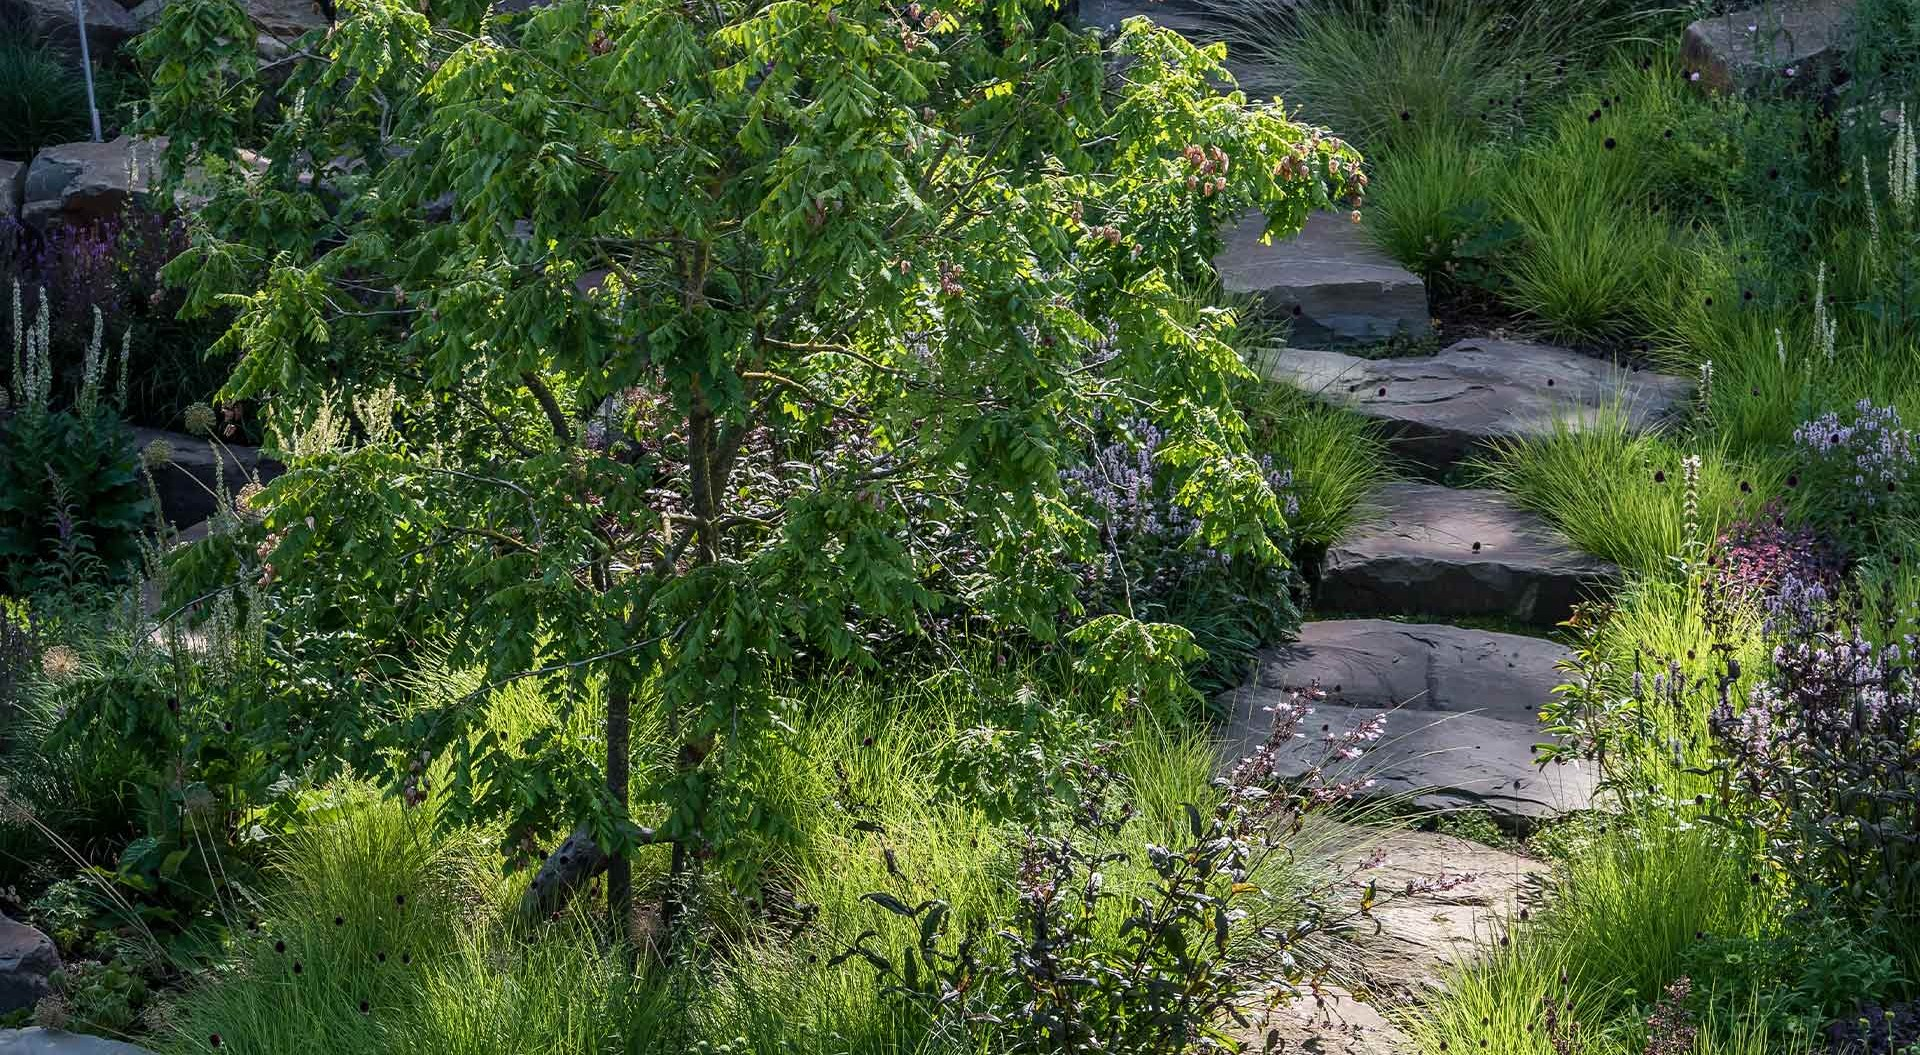 Natural stone stairs lead past plants through the green